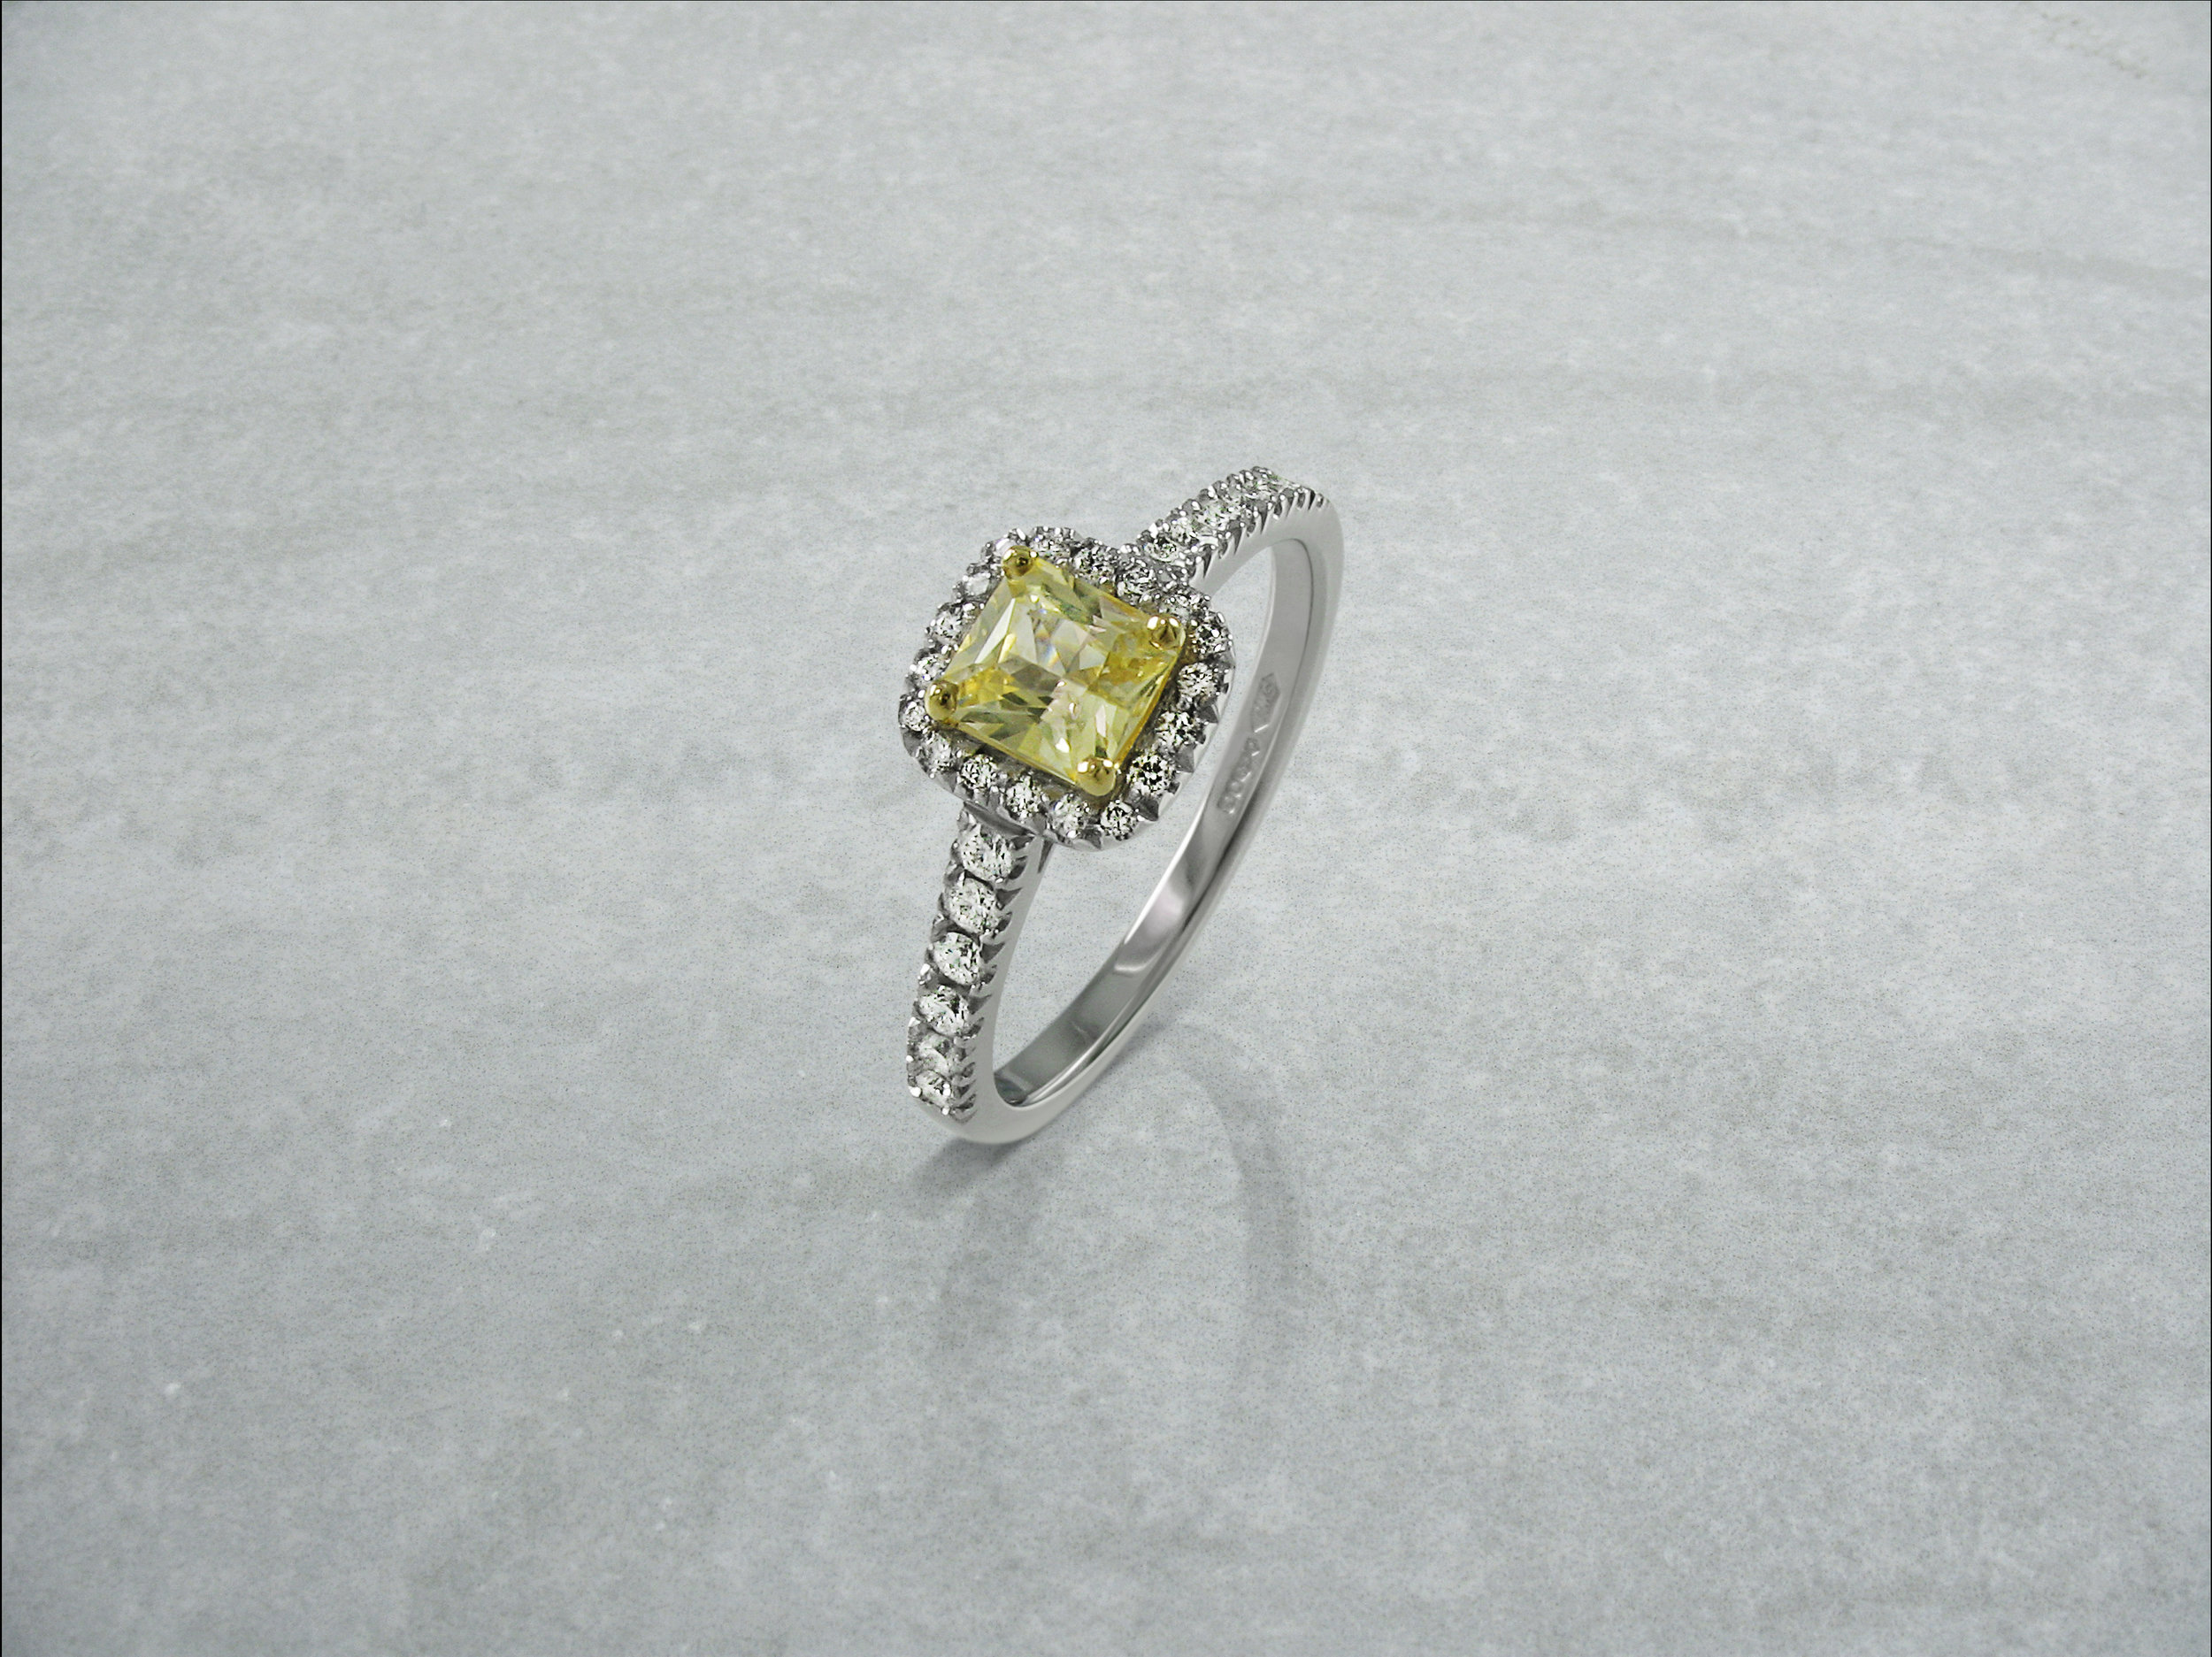 Radiant cut yellow diamond halo engagement ring with diamond band